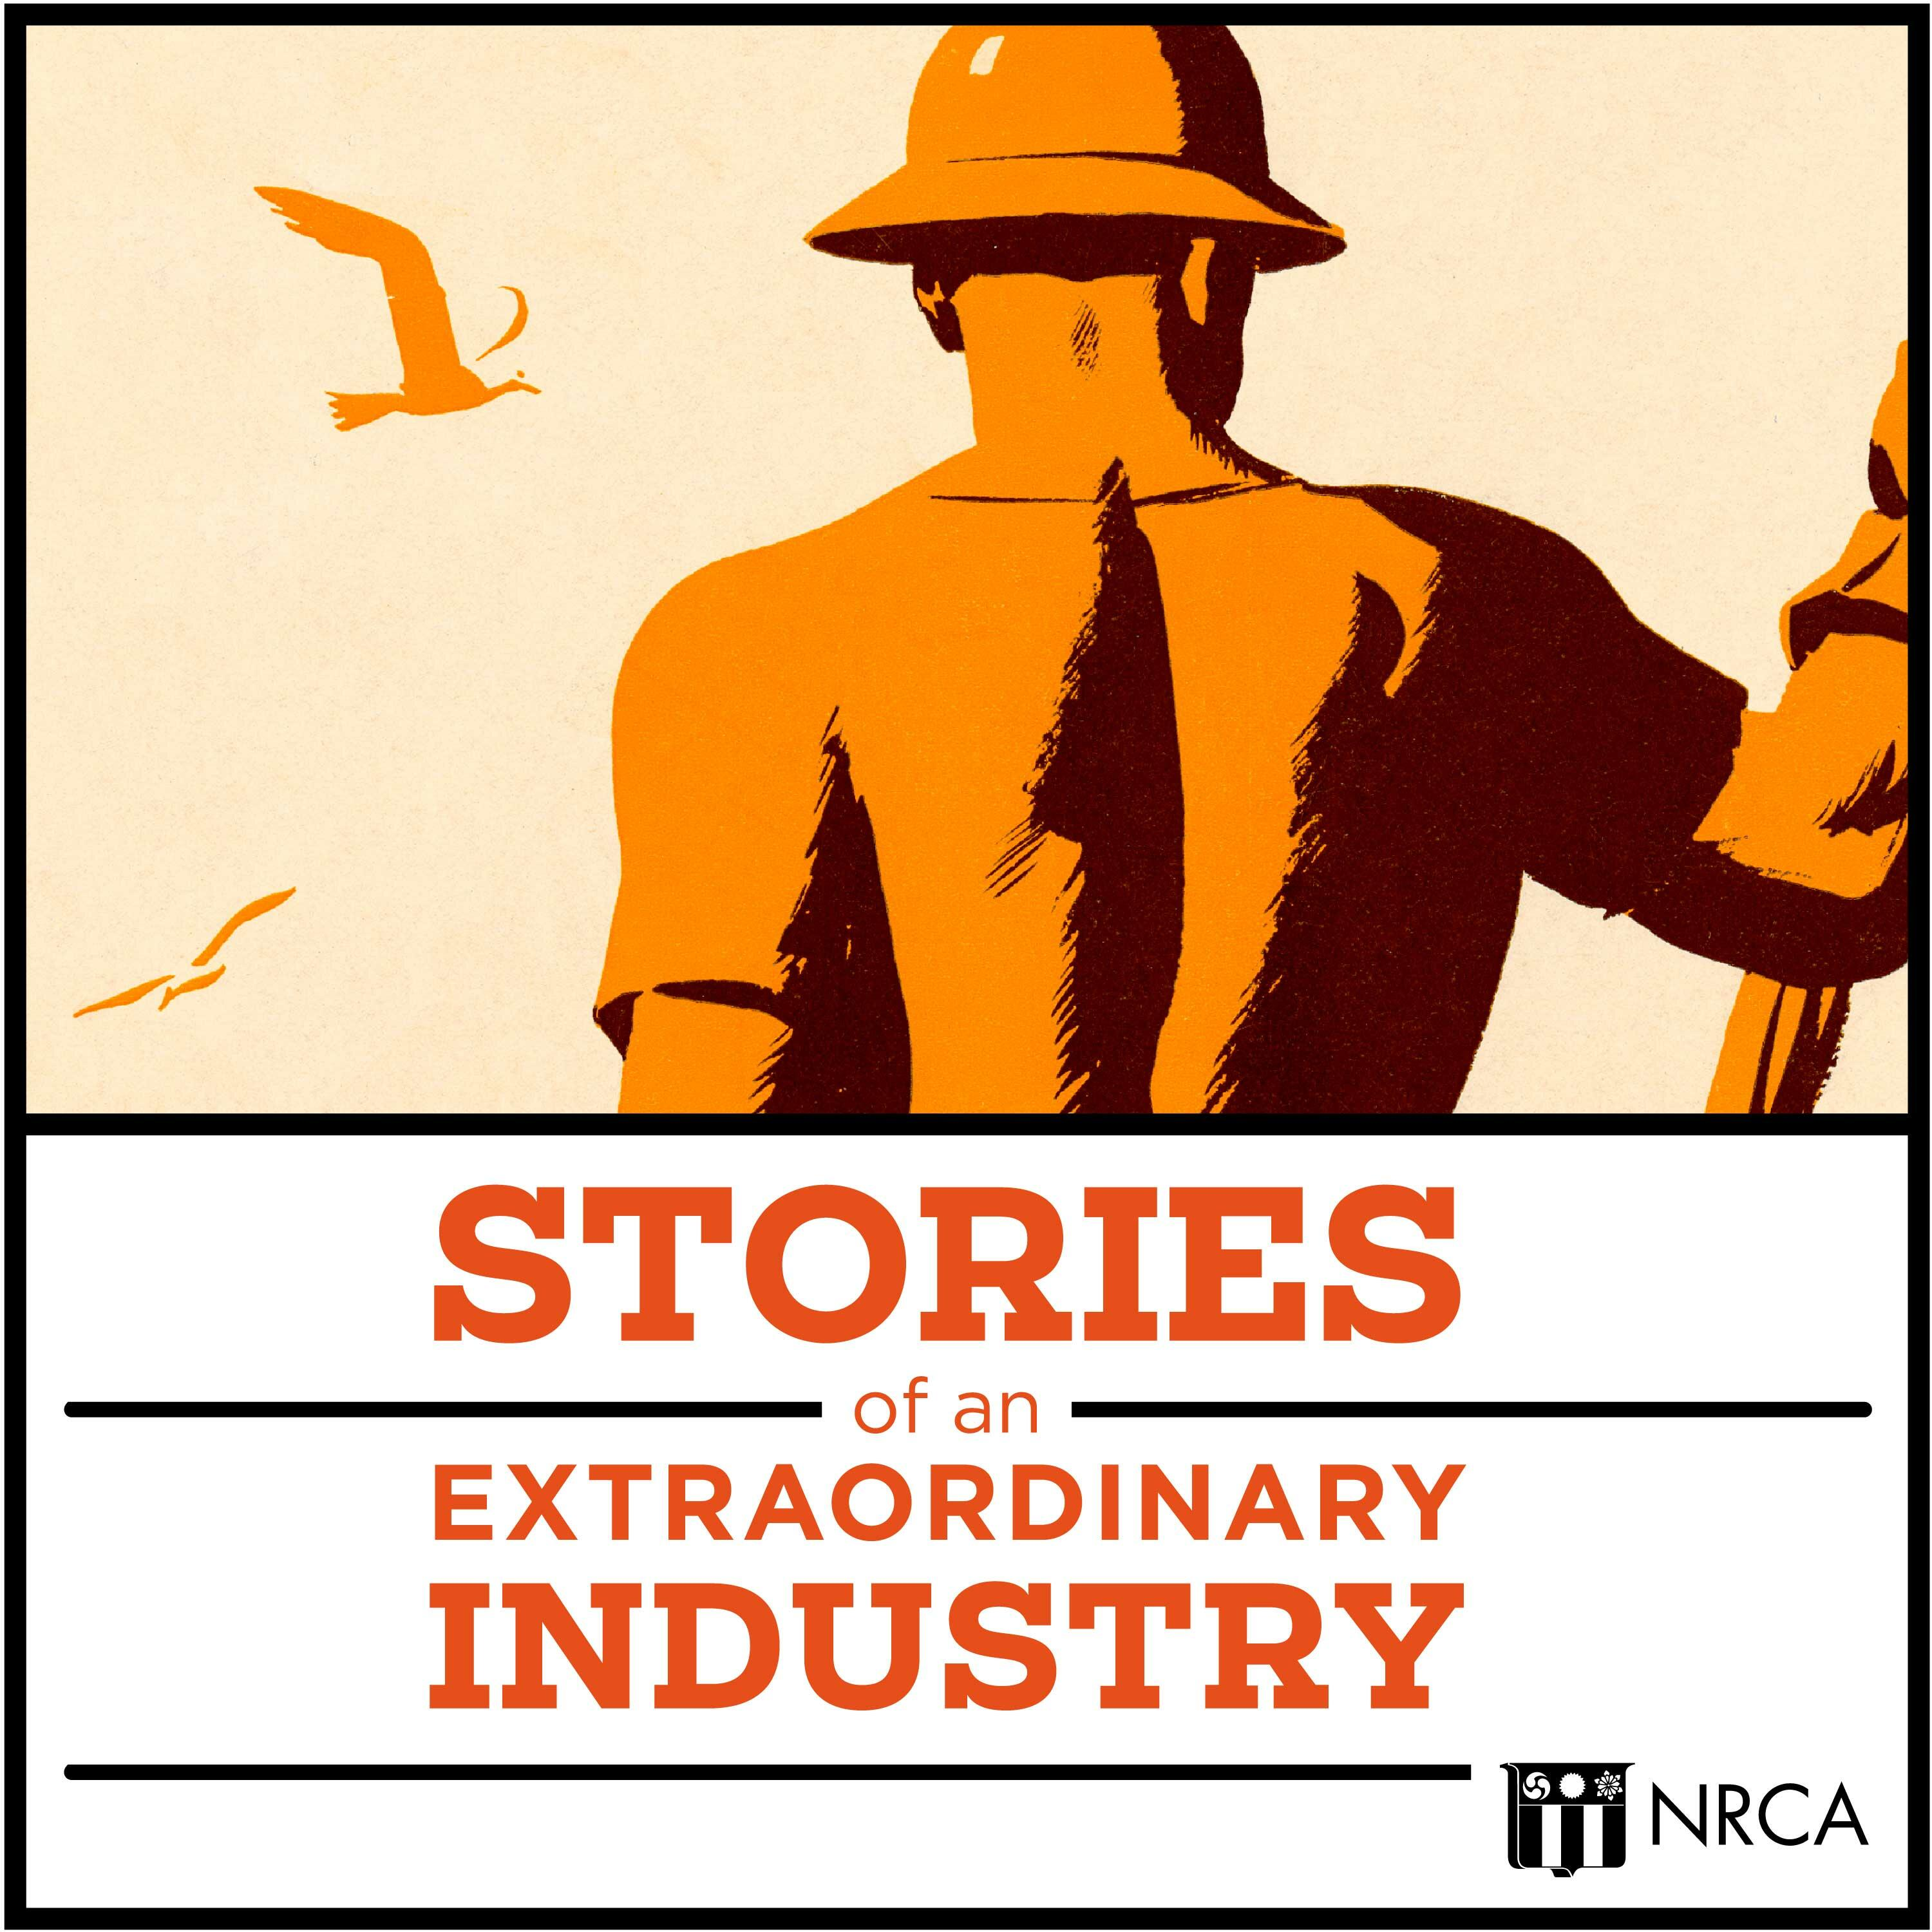 Stories of an Extraordinary Industry